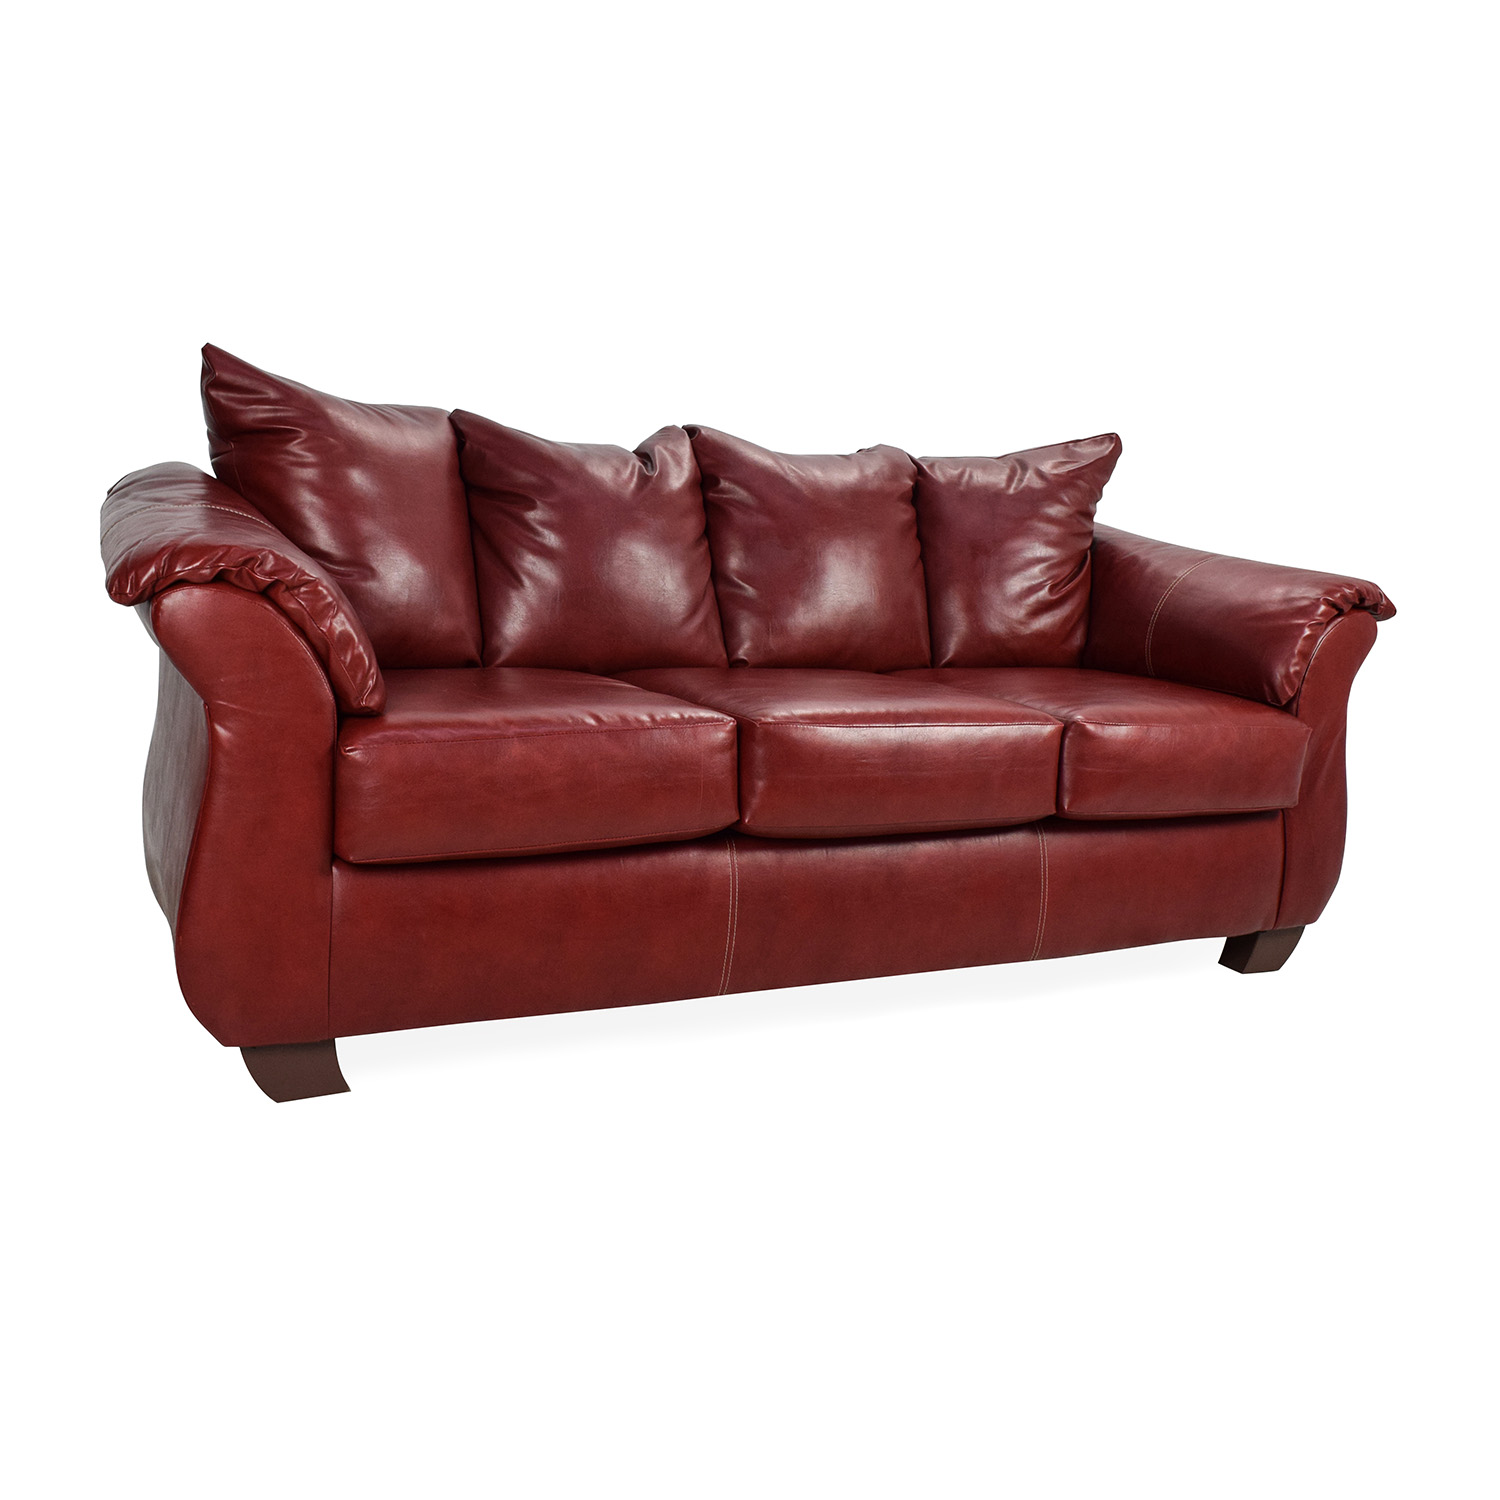 red leather sofas and chairs black sofa furniture 72 off haymarket sierra